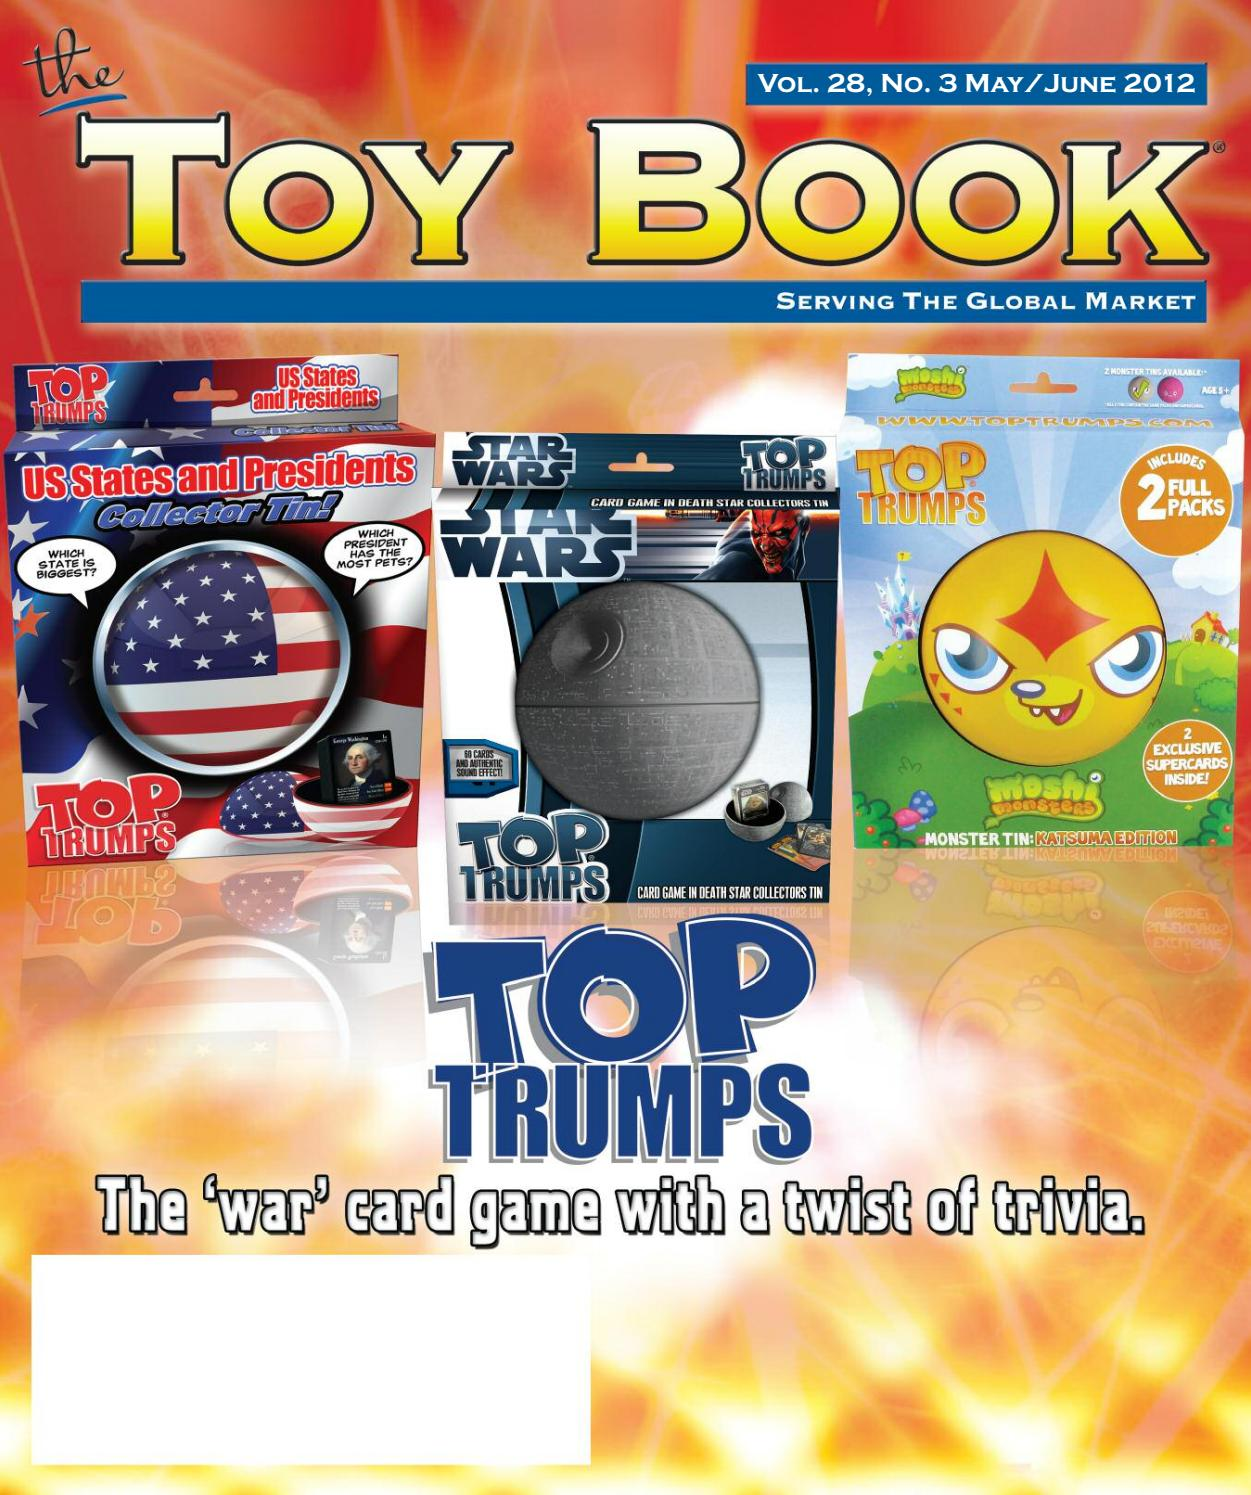 May/June 2012 by The Toy Book - issuu